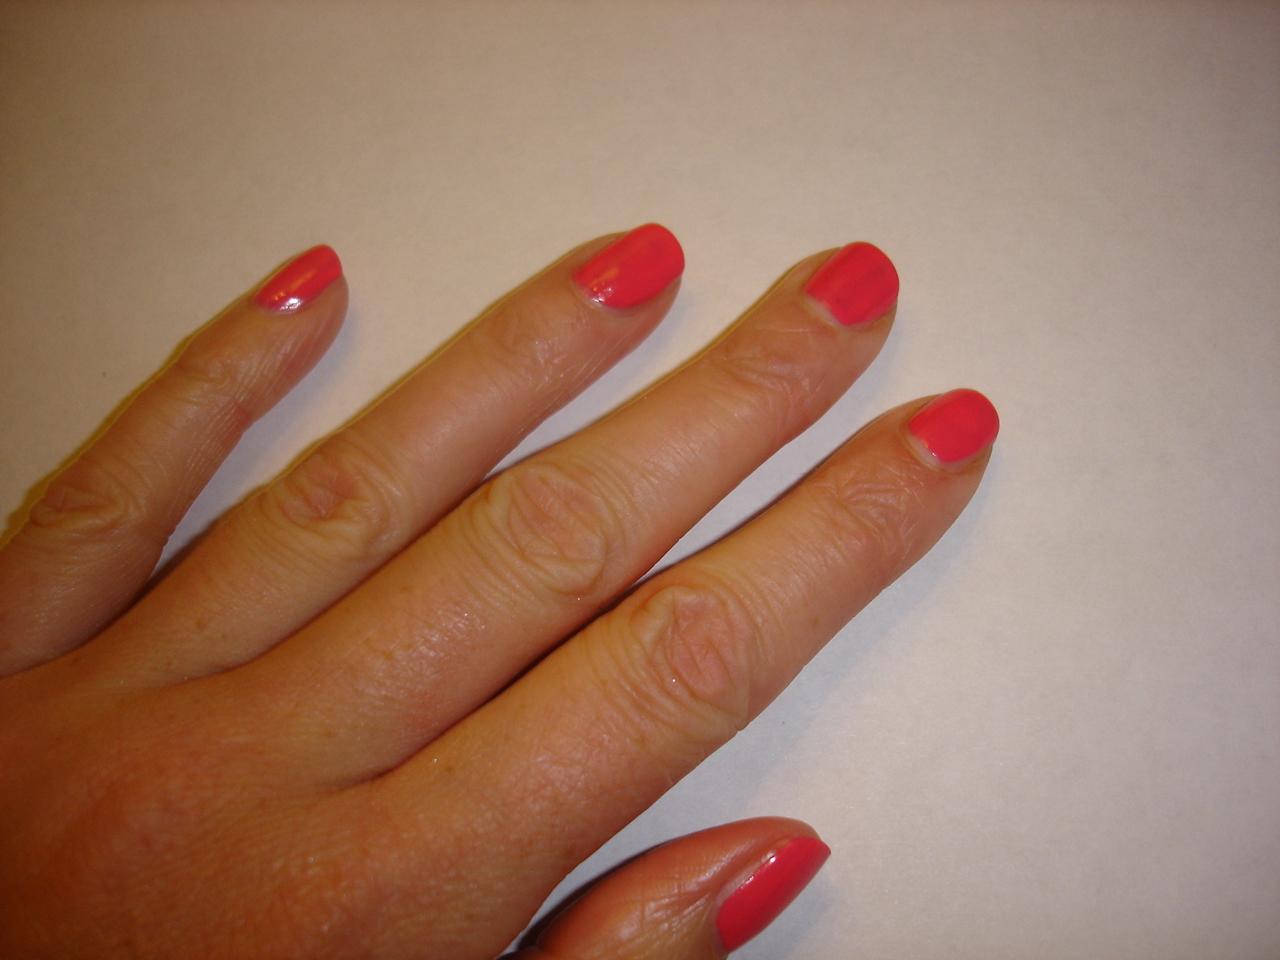 Boots No7 Gel Look Shine Nail Colour - Summer Holiday - My Beauty ...